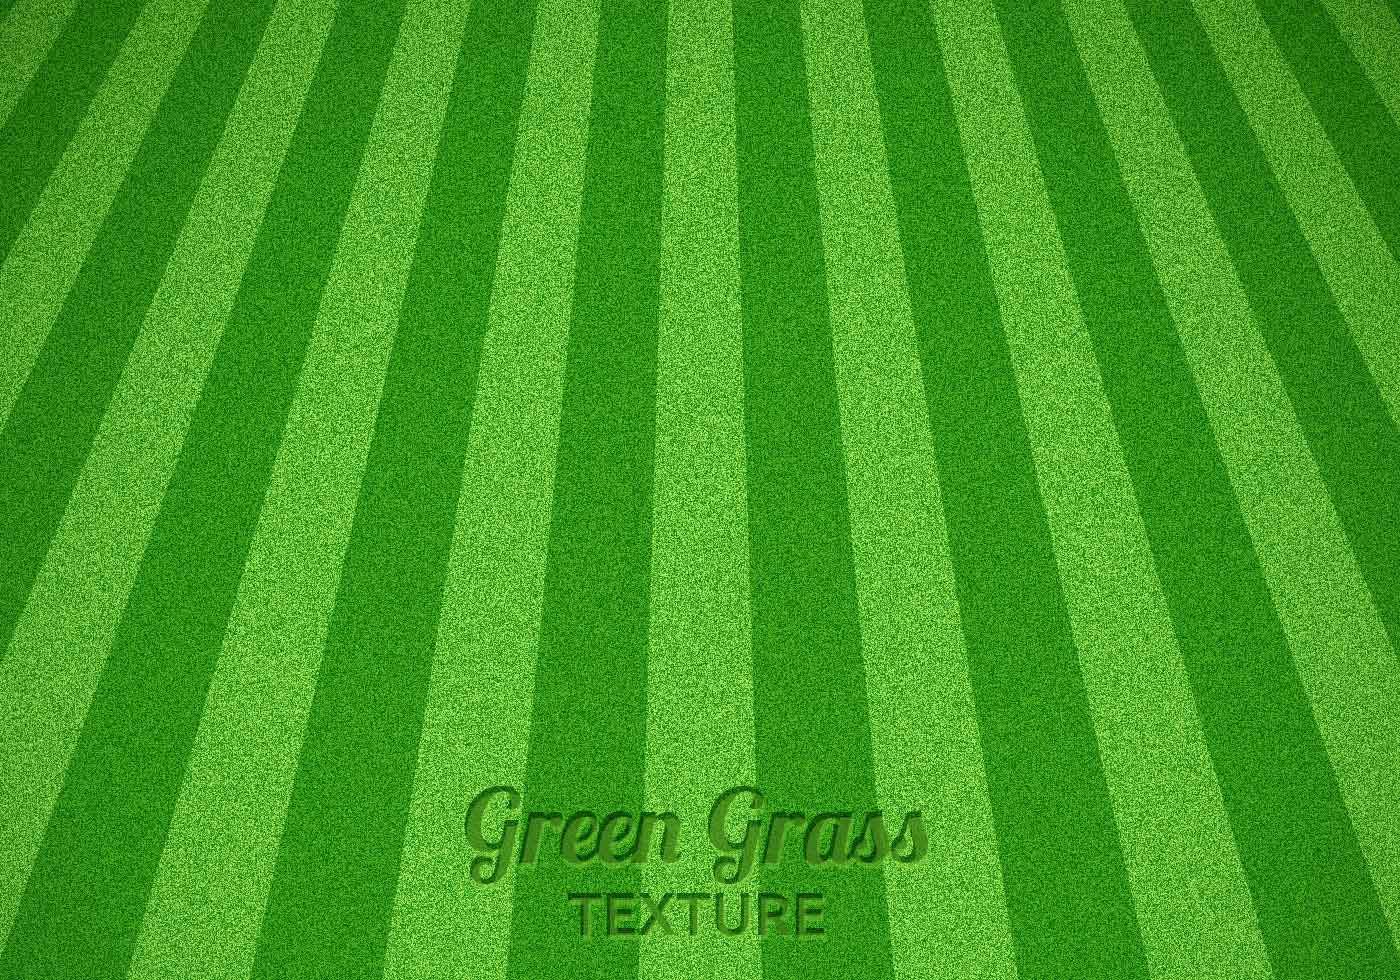 Mowed Green Grass Texture Psd Free Photoshop Brushes At